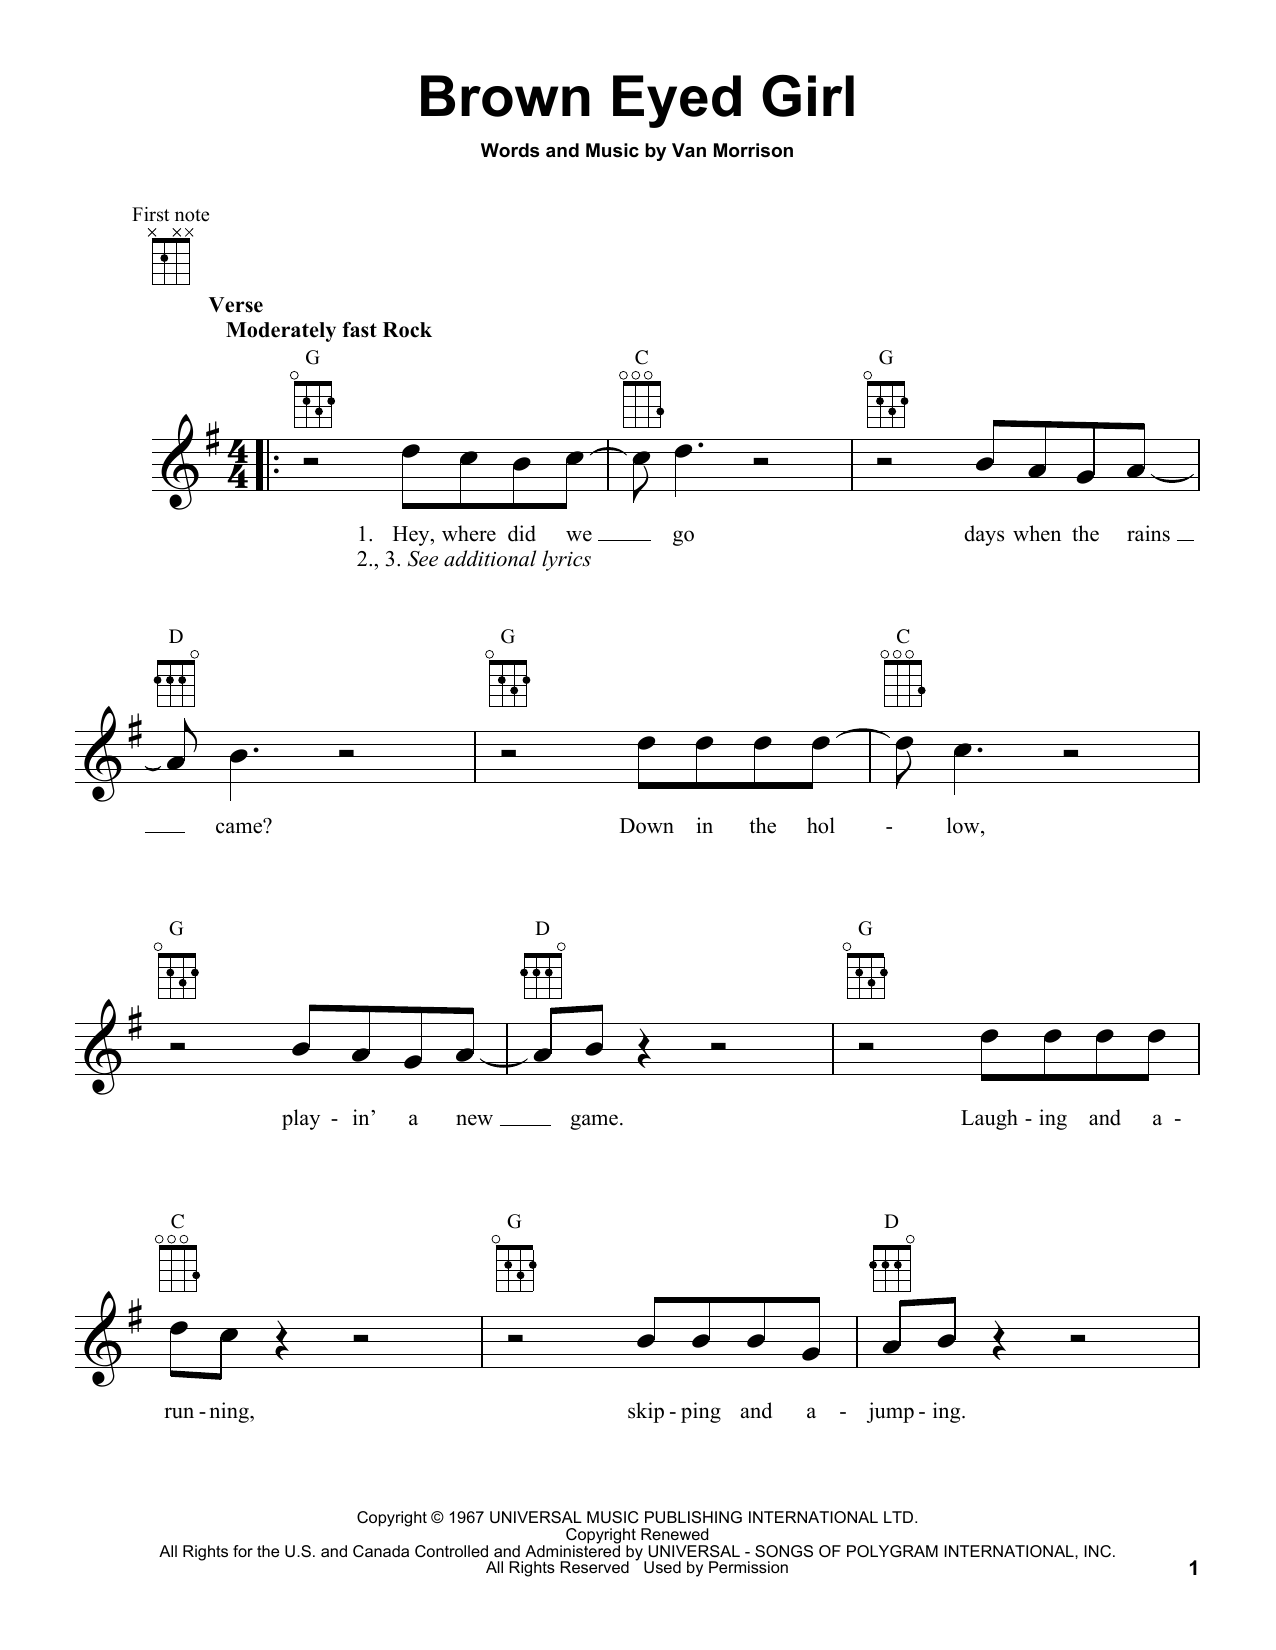 Ukulele ukulele tabs van morrison : Brown Eyed Girl by Van Morrison - Ukulele - Guitar Instructor